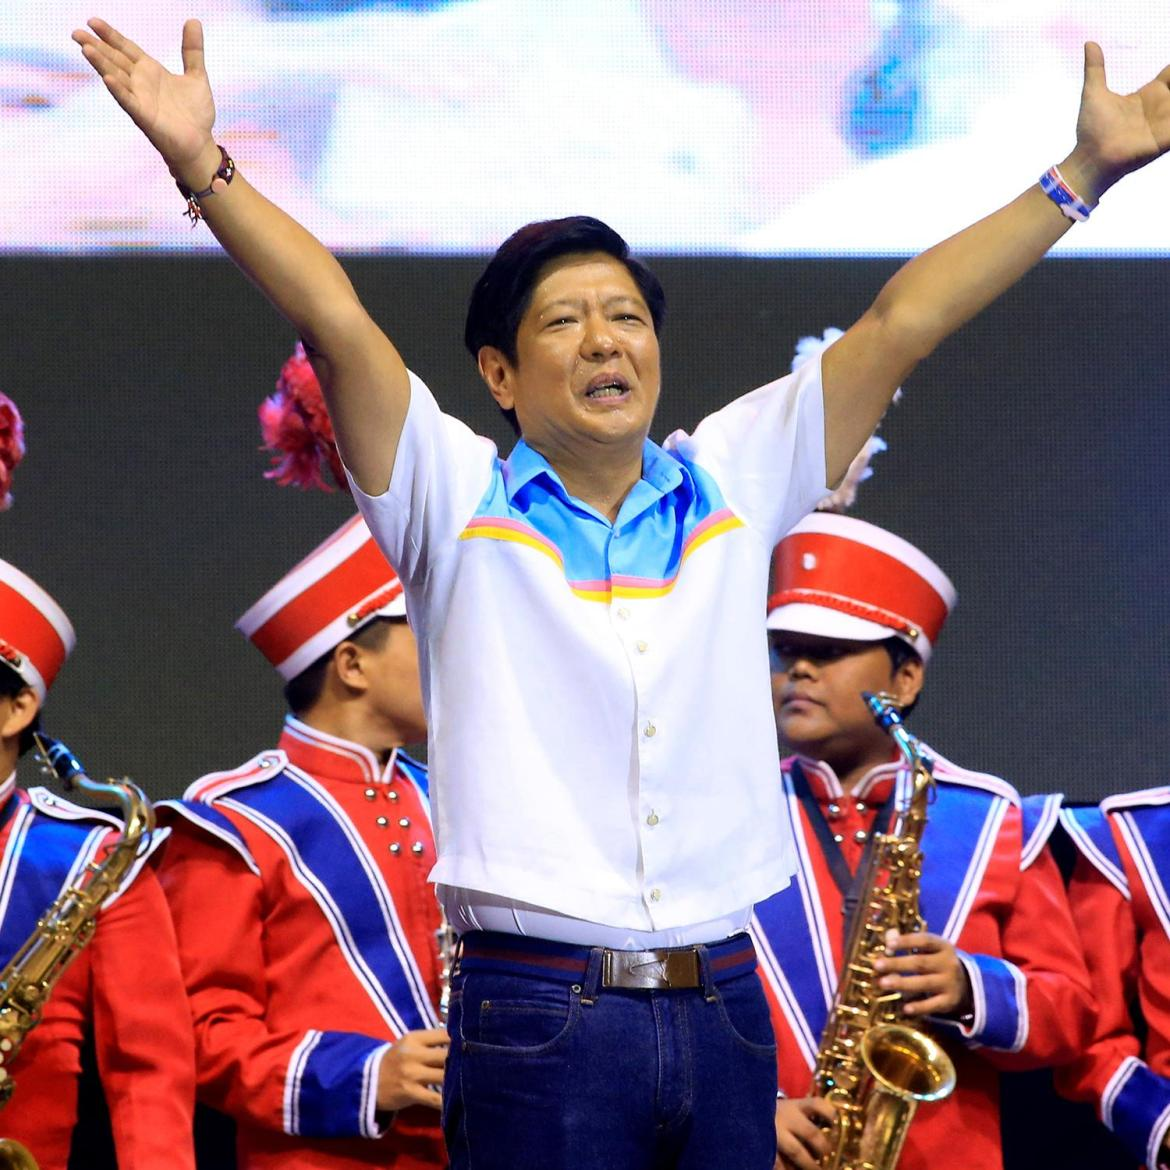 Marcos tops among presidential candidates as he dominates 'real-time, real man' street survey